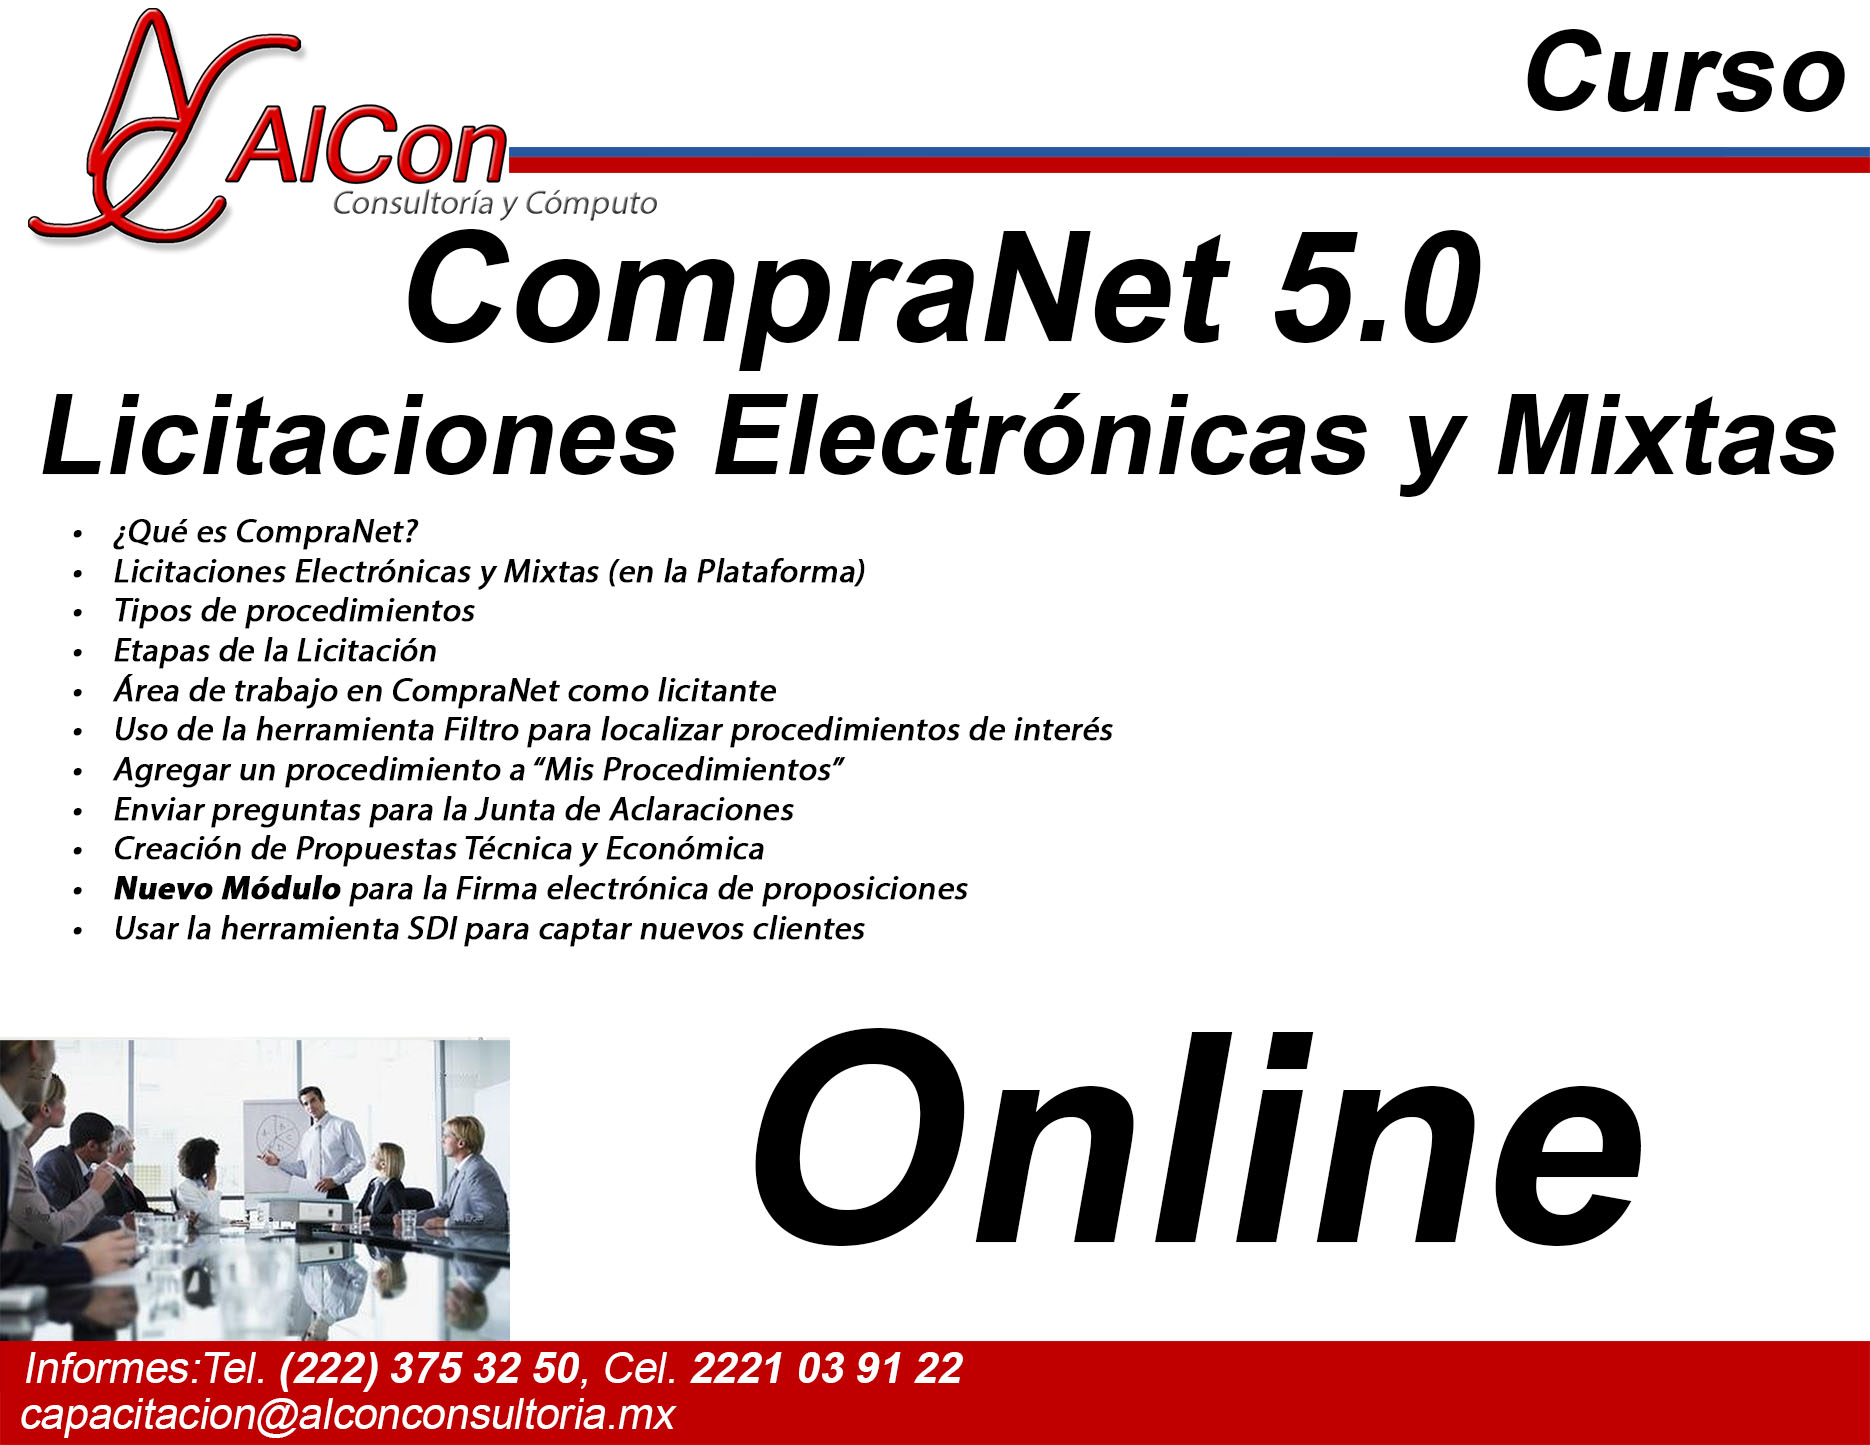 Curso online de CompraNet 5.0, AlCon Consultoría y Cómputo, AlCon Consulting And Commerce, Arcadio Alonso Sánchez